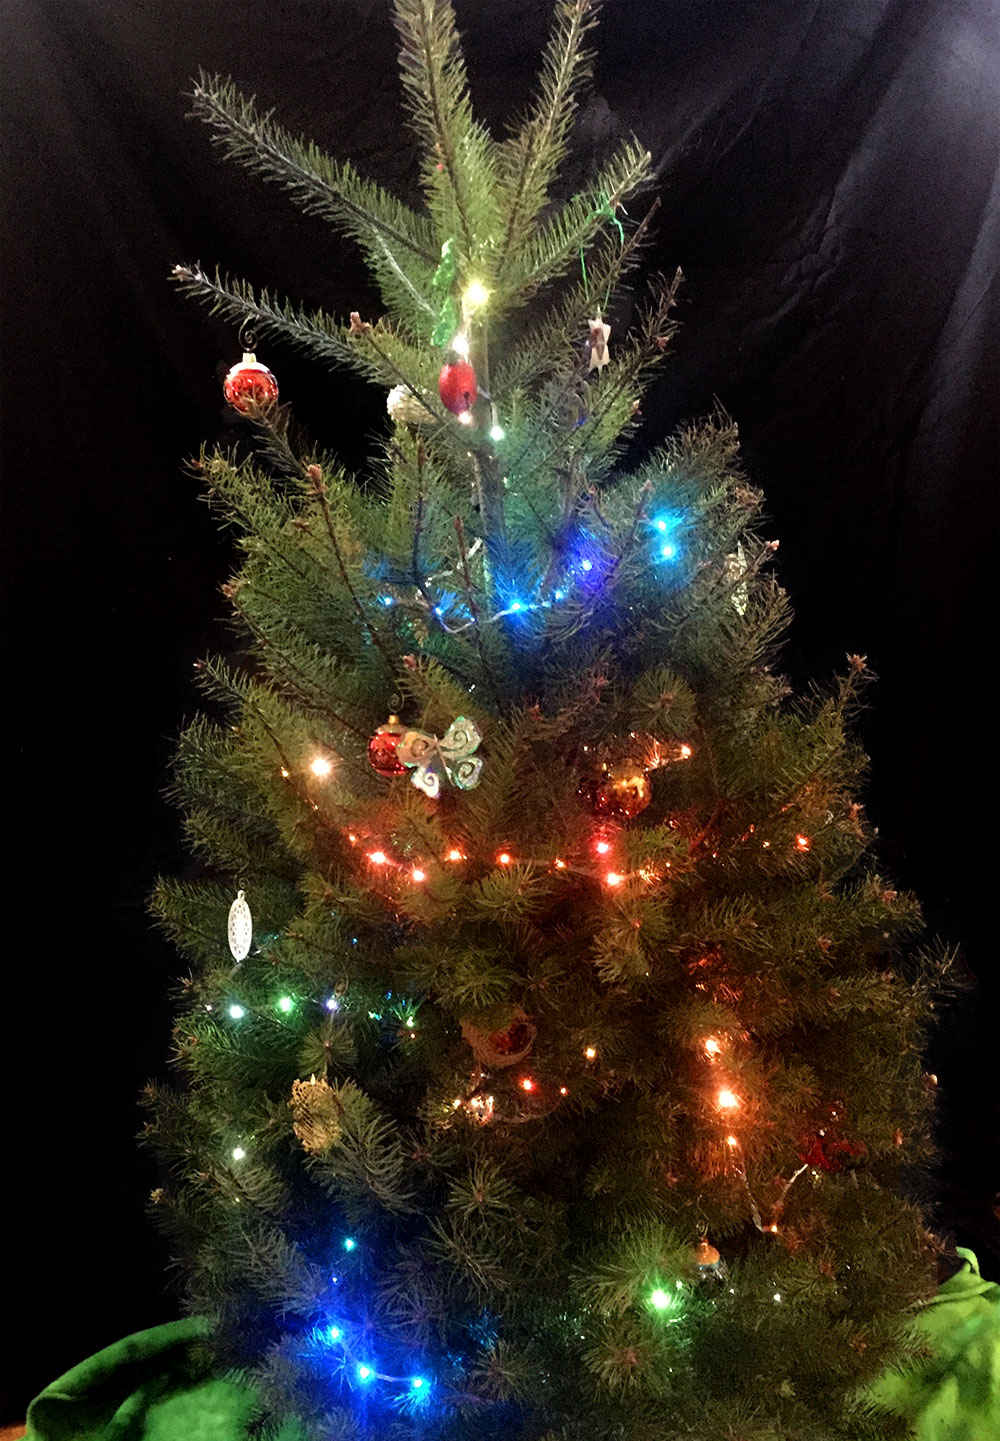 adafruit_products_christmastree_neopixels.jpg